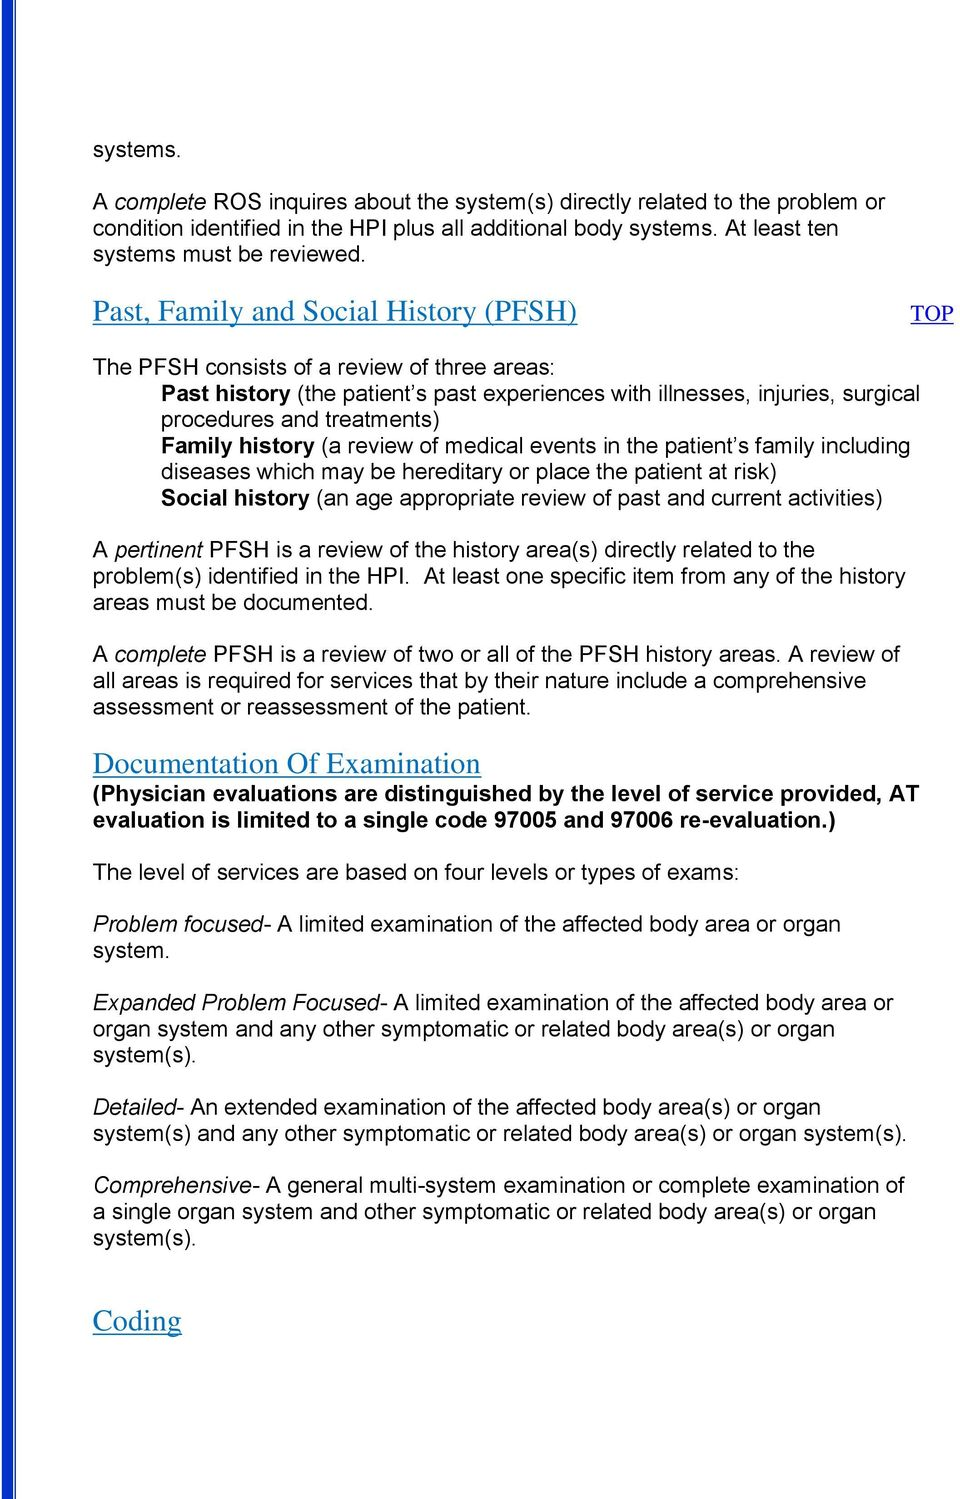 history (a review of medical events in the patient s family including diseases which may be hereditary or place the patient at risk) Social history (an age appropriate review of past and current